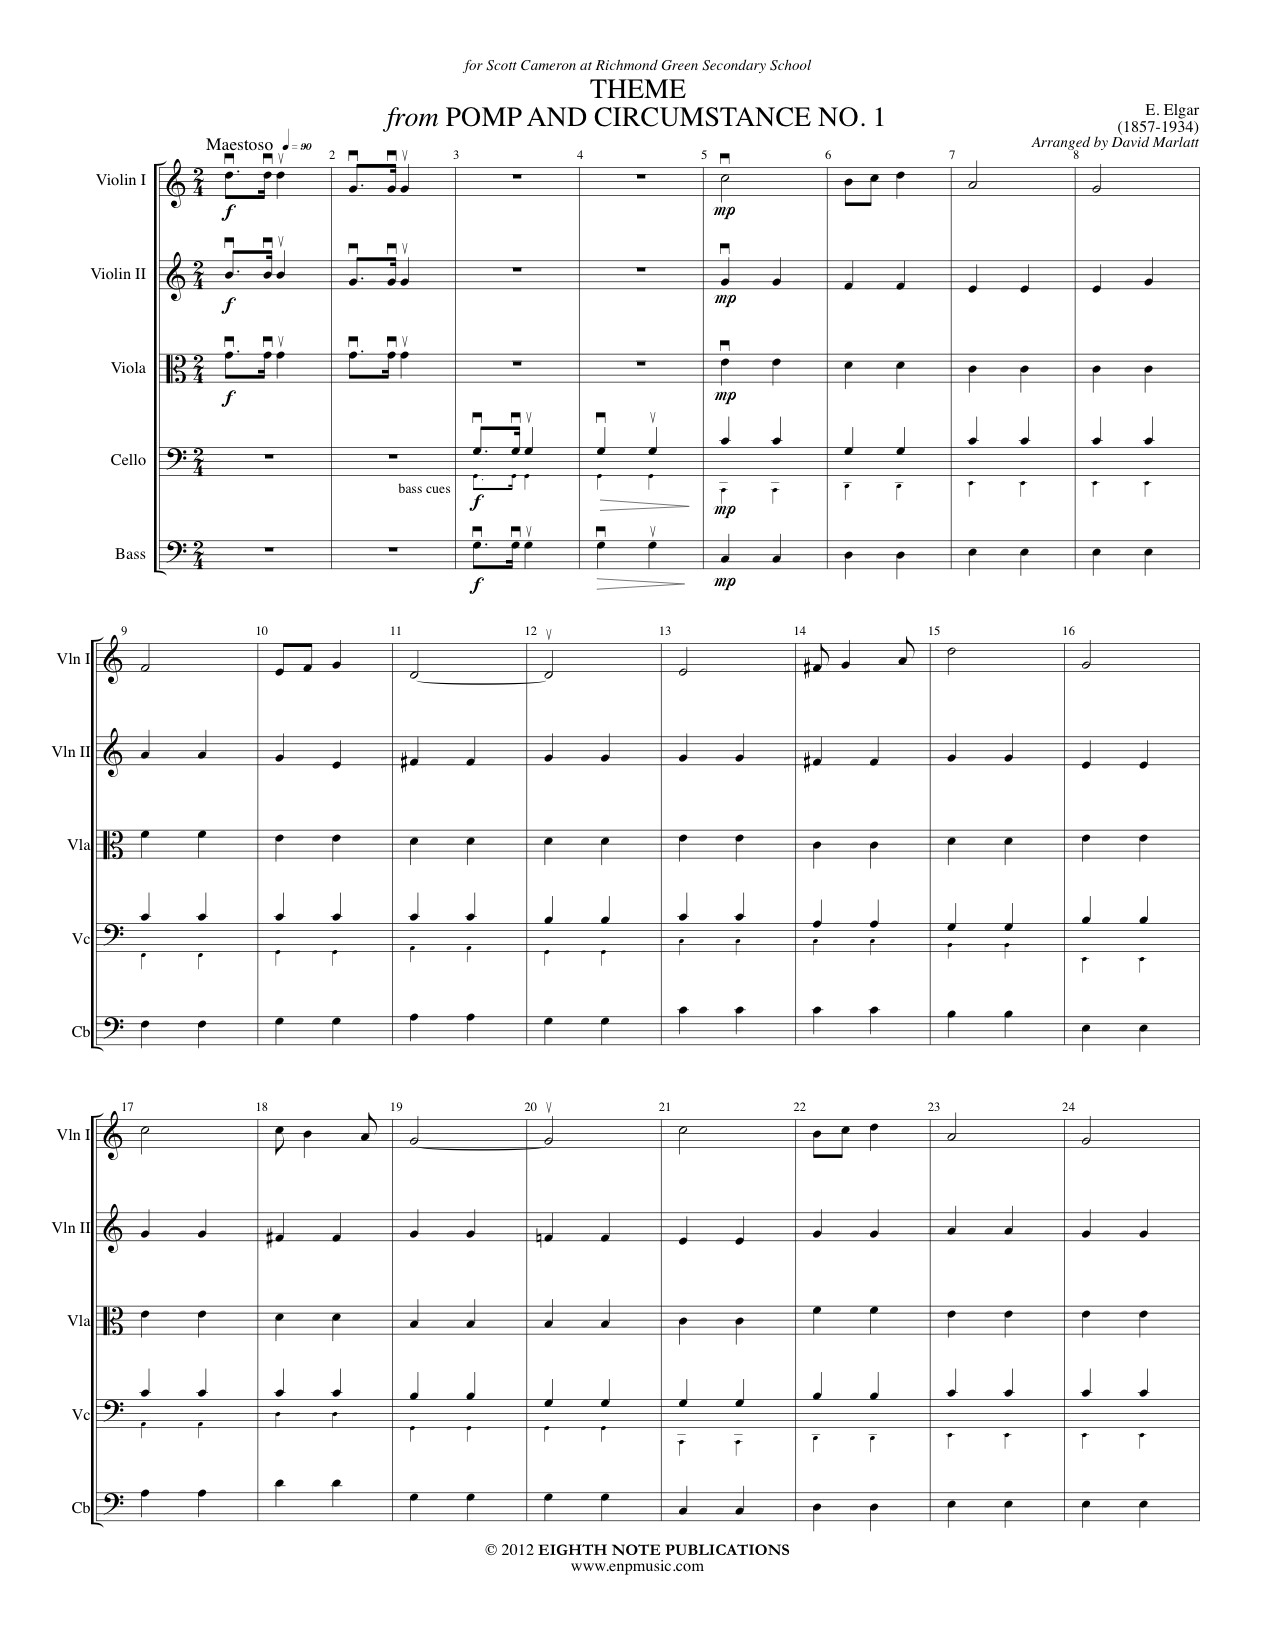 Pomp and Circumstance No. 1 - Theme - Edward Elgar